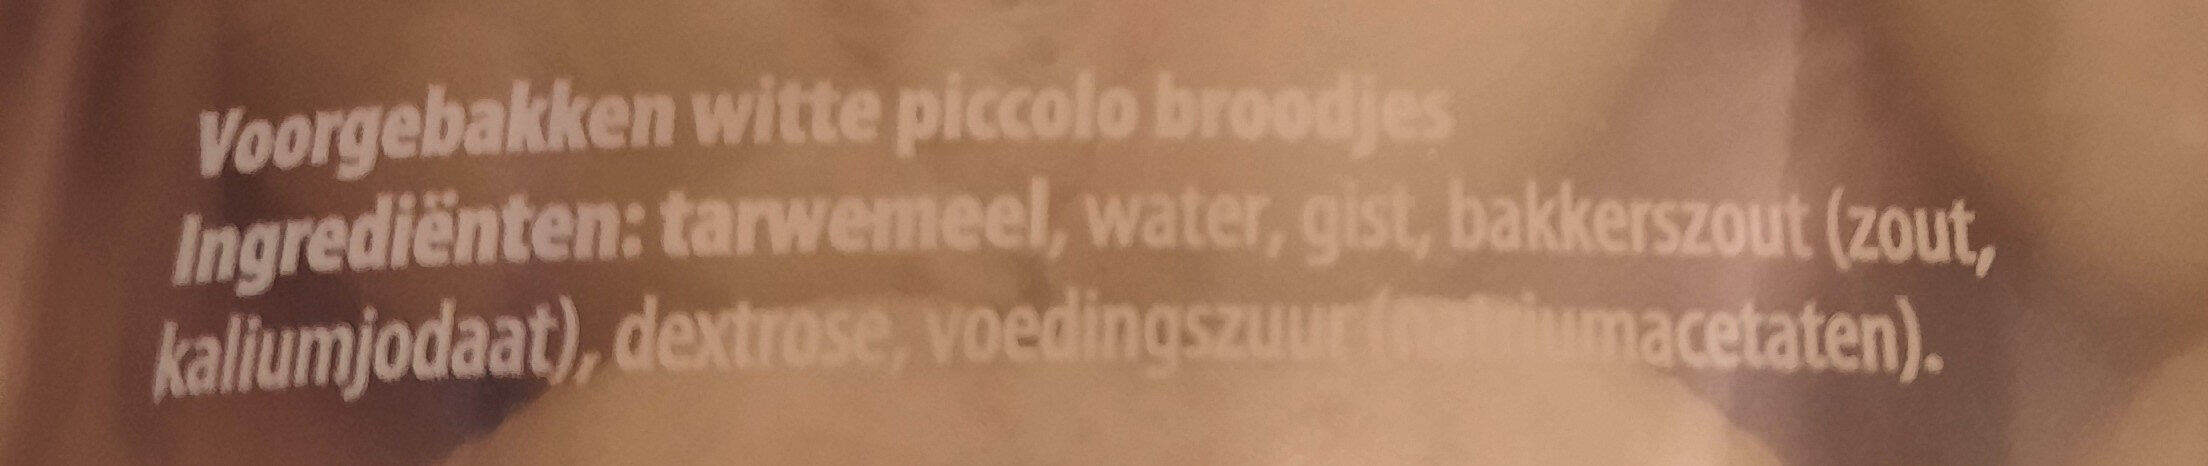 piccolo wit - Ingredients - nl